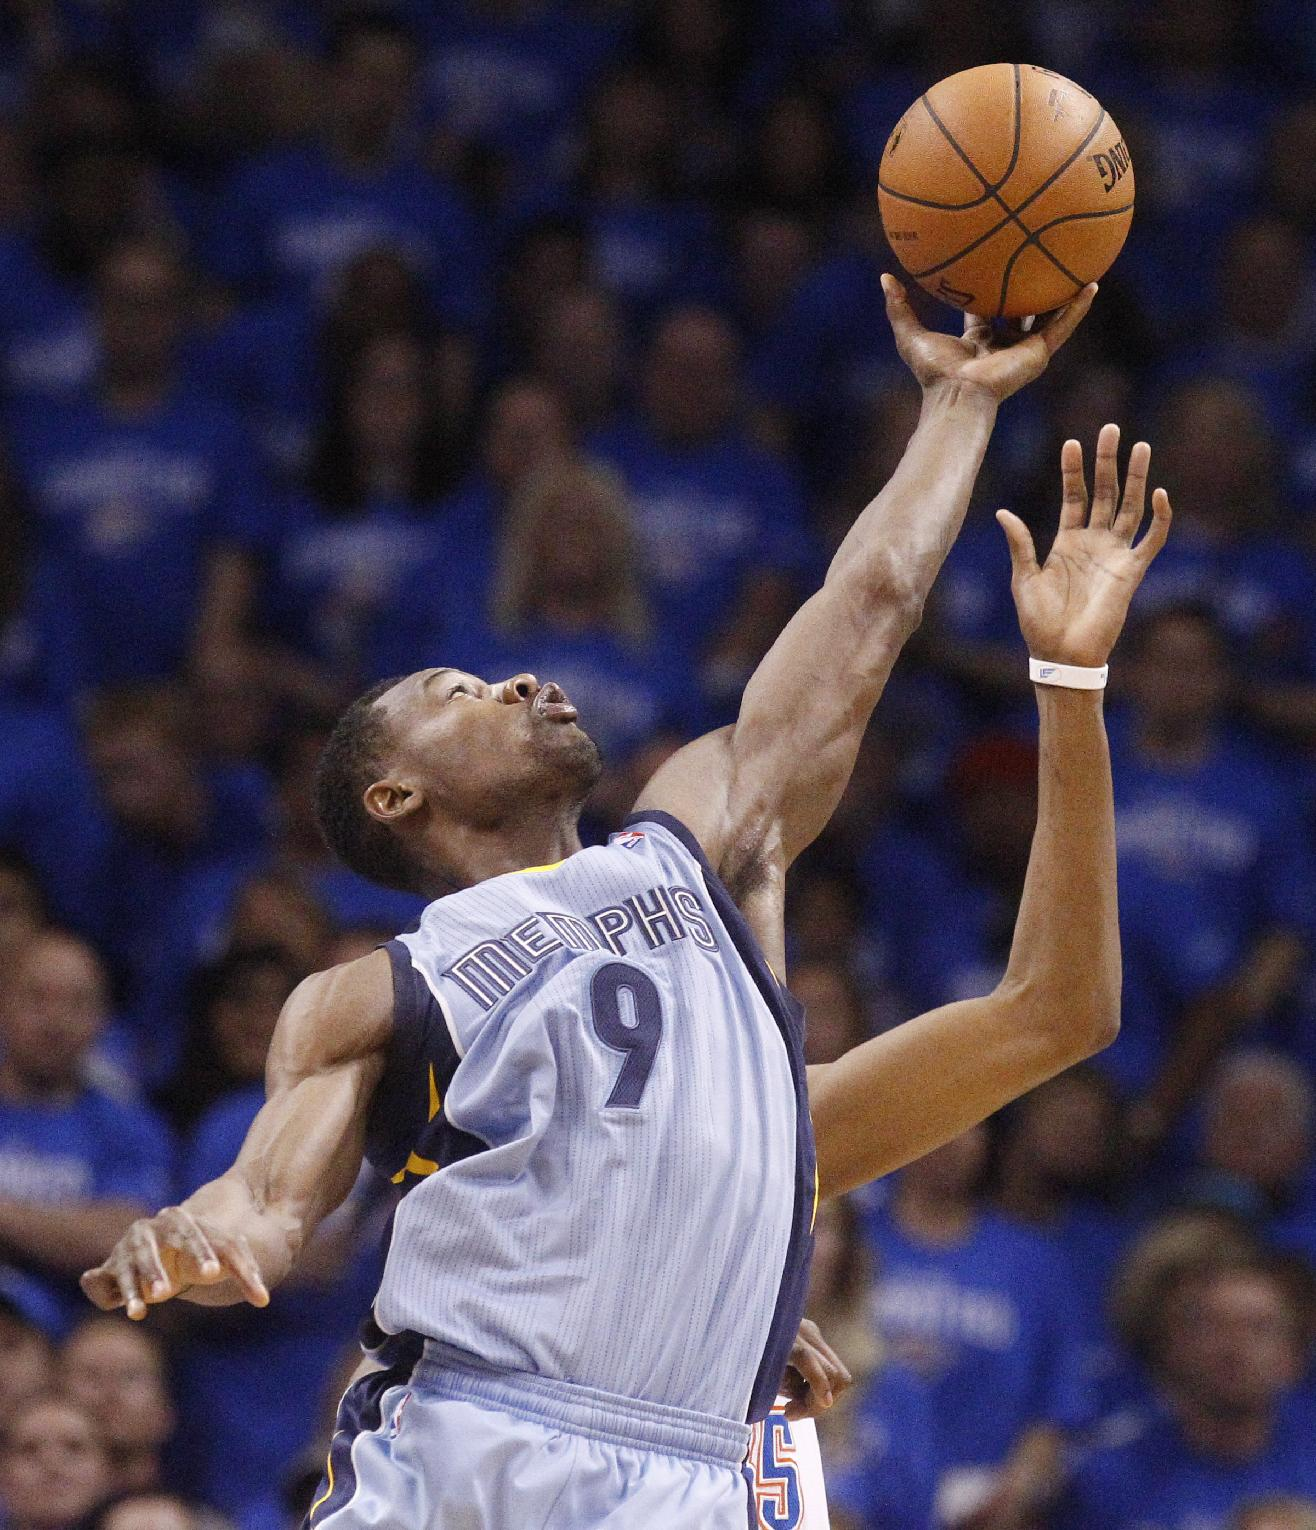 Memphis Grizzlies guard Tony Allen (9) jumps up to grab a pass intended for Oklahoma City Thunder forward Kevin Durant, rear, in the first quarter of Game 2 of an opening-round NBA basketball playoff series in Oklahoma City, Monday, April 21, 2014